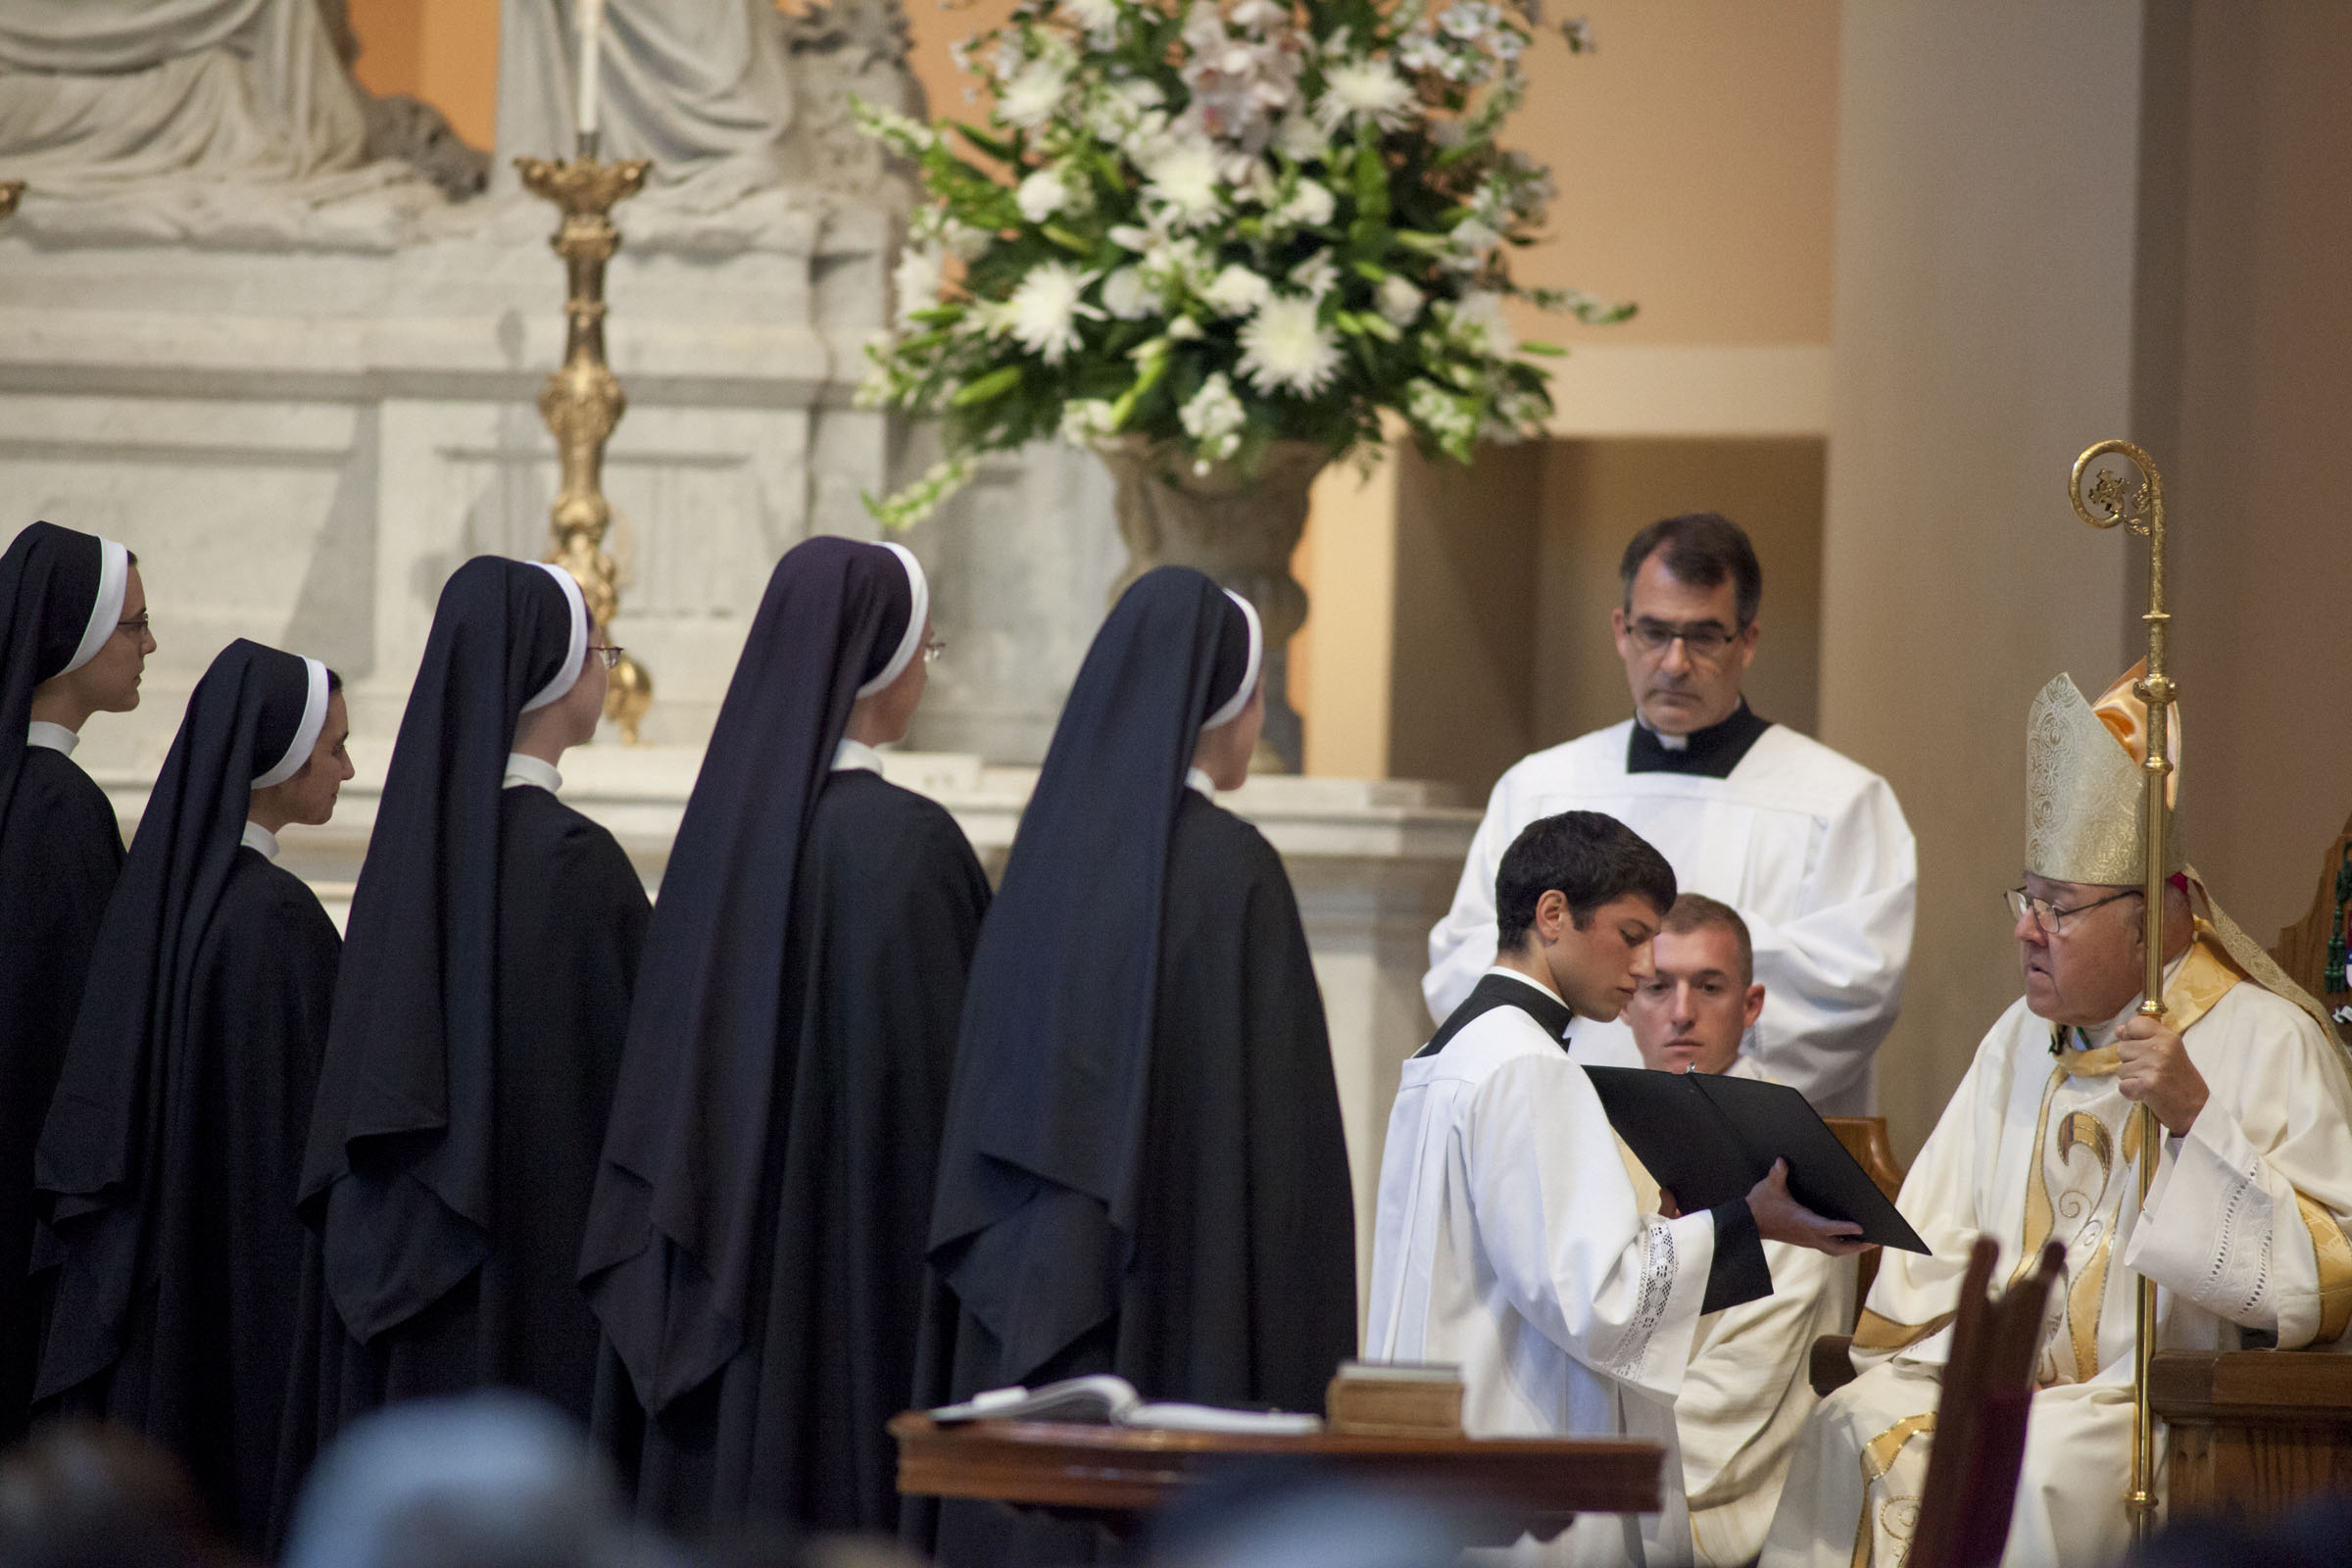 American nuns sexual intimacy in relationships